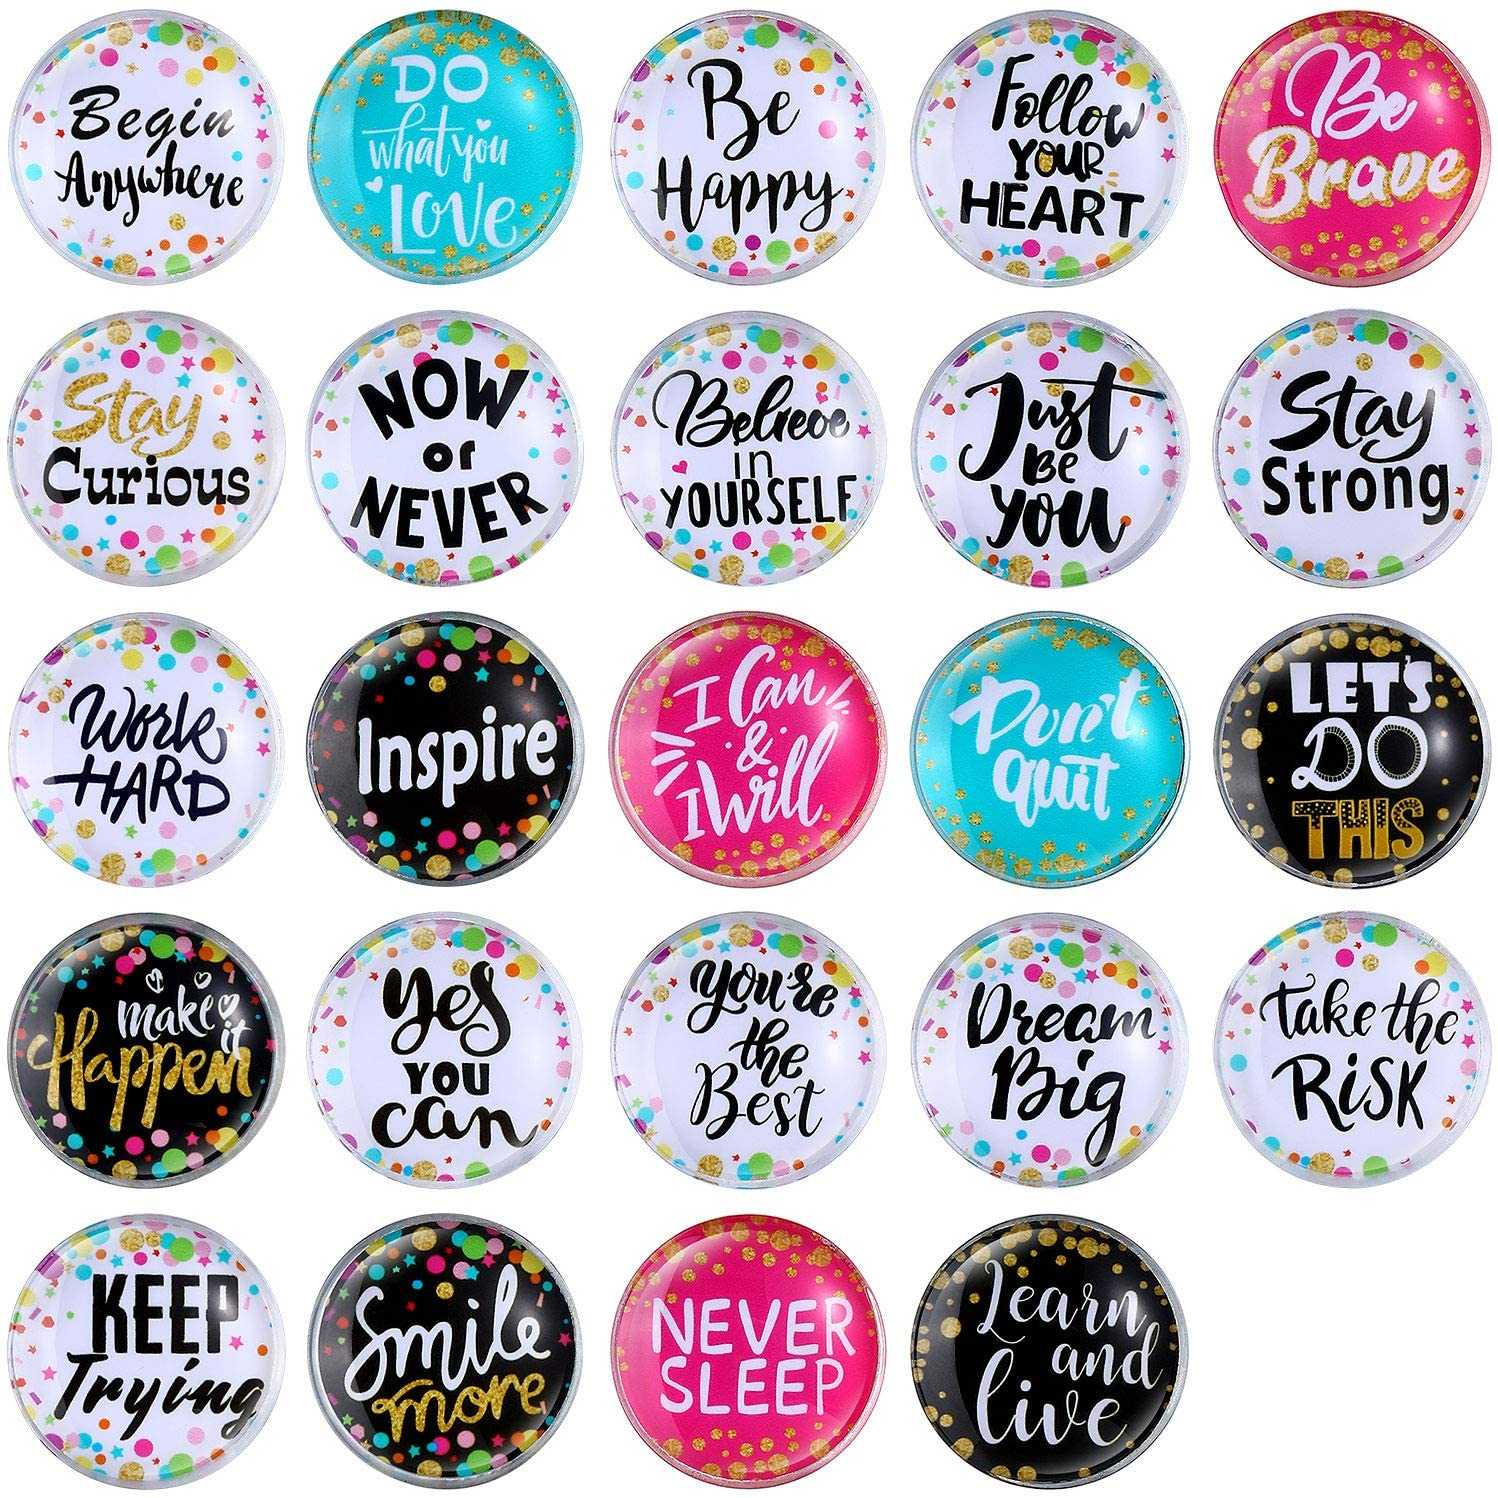 Blulu 24 Pieces Inspirational Magnets, Confetti Positive Saying Accents Motivation Glass Fridge Magnets Round Inspirational Quote Refrigerator Locker Magnet for Classroom Office Home Decorations